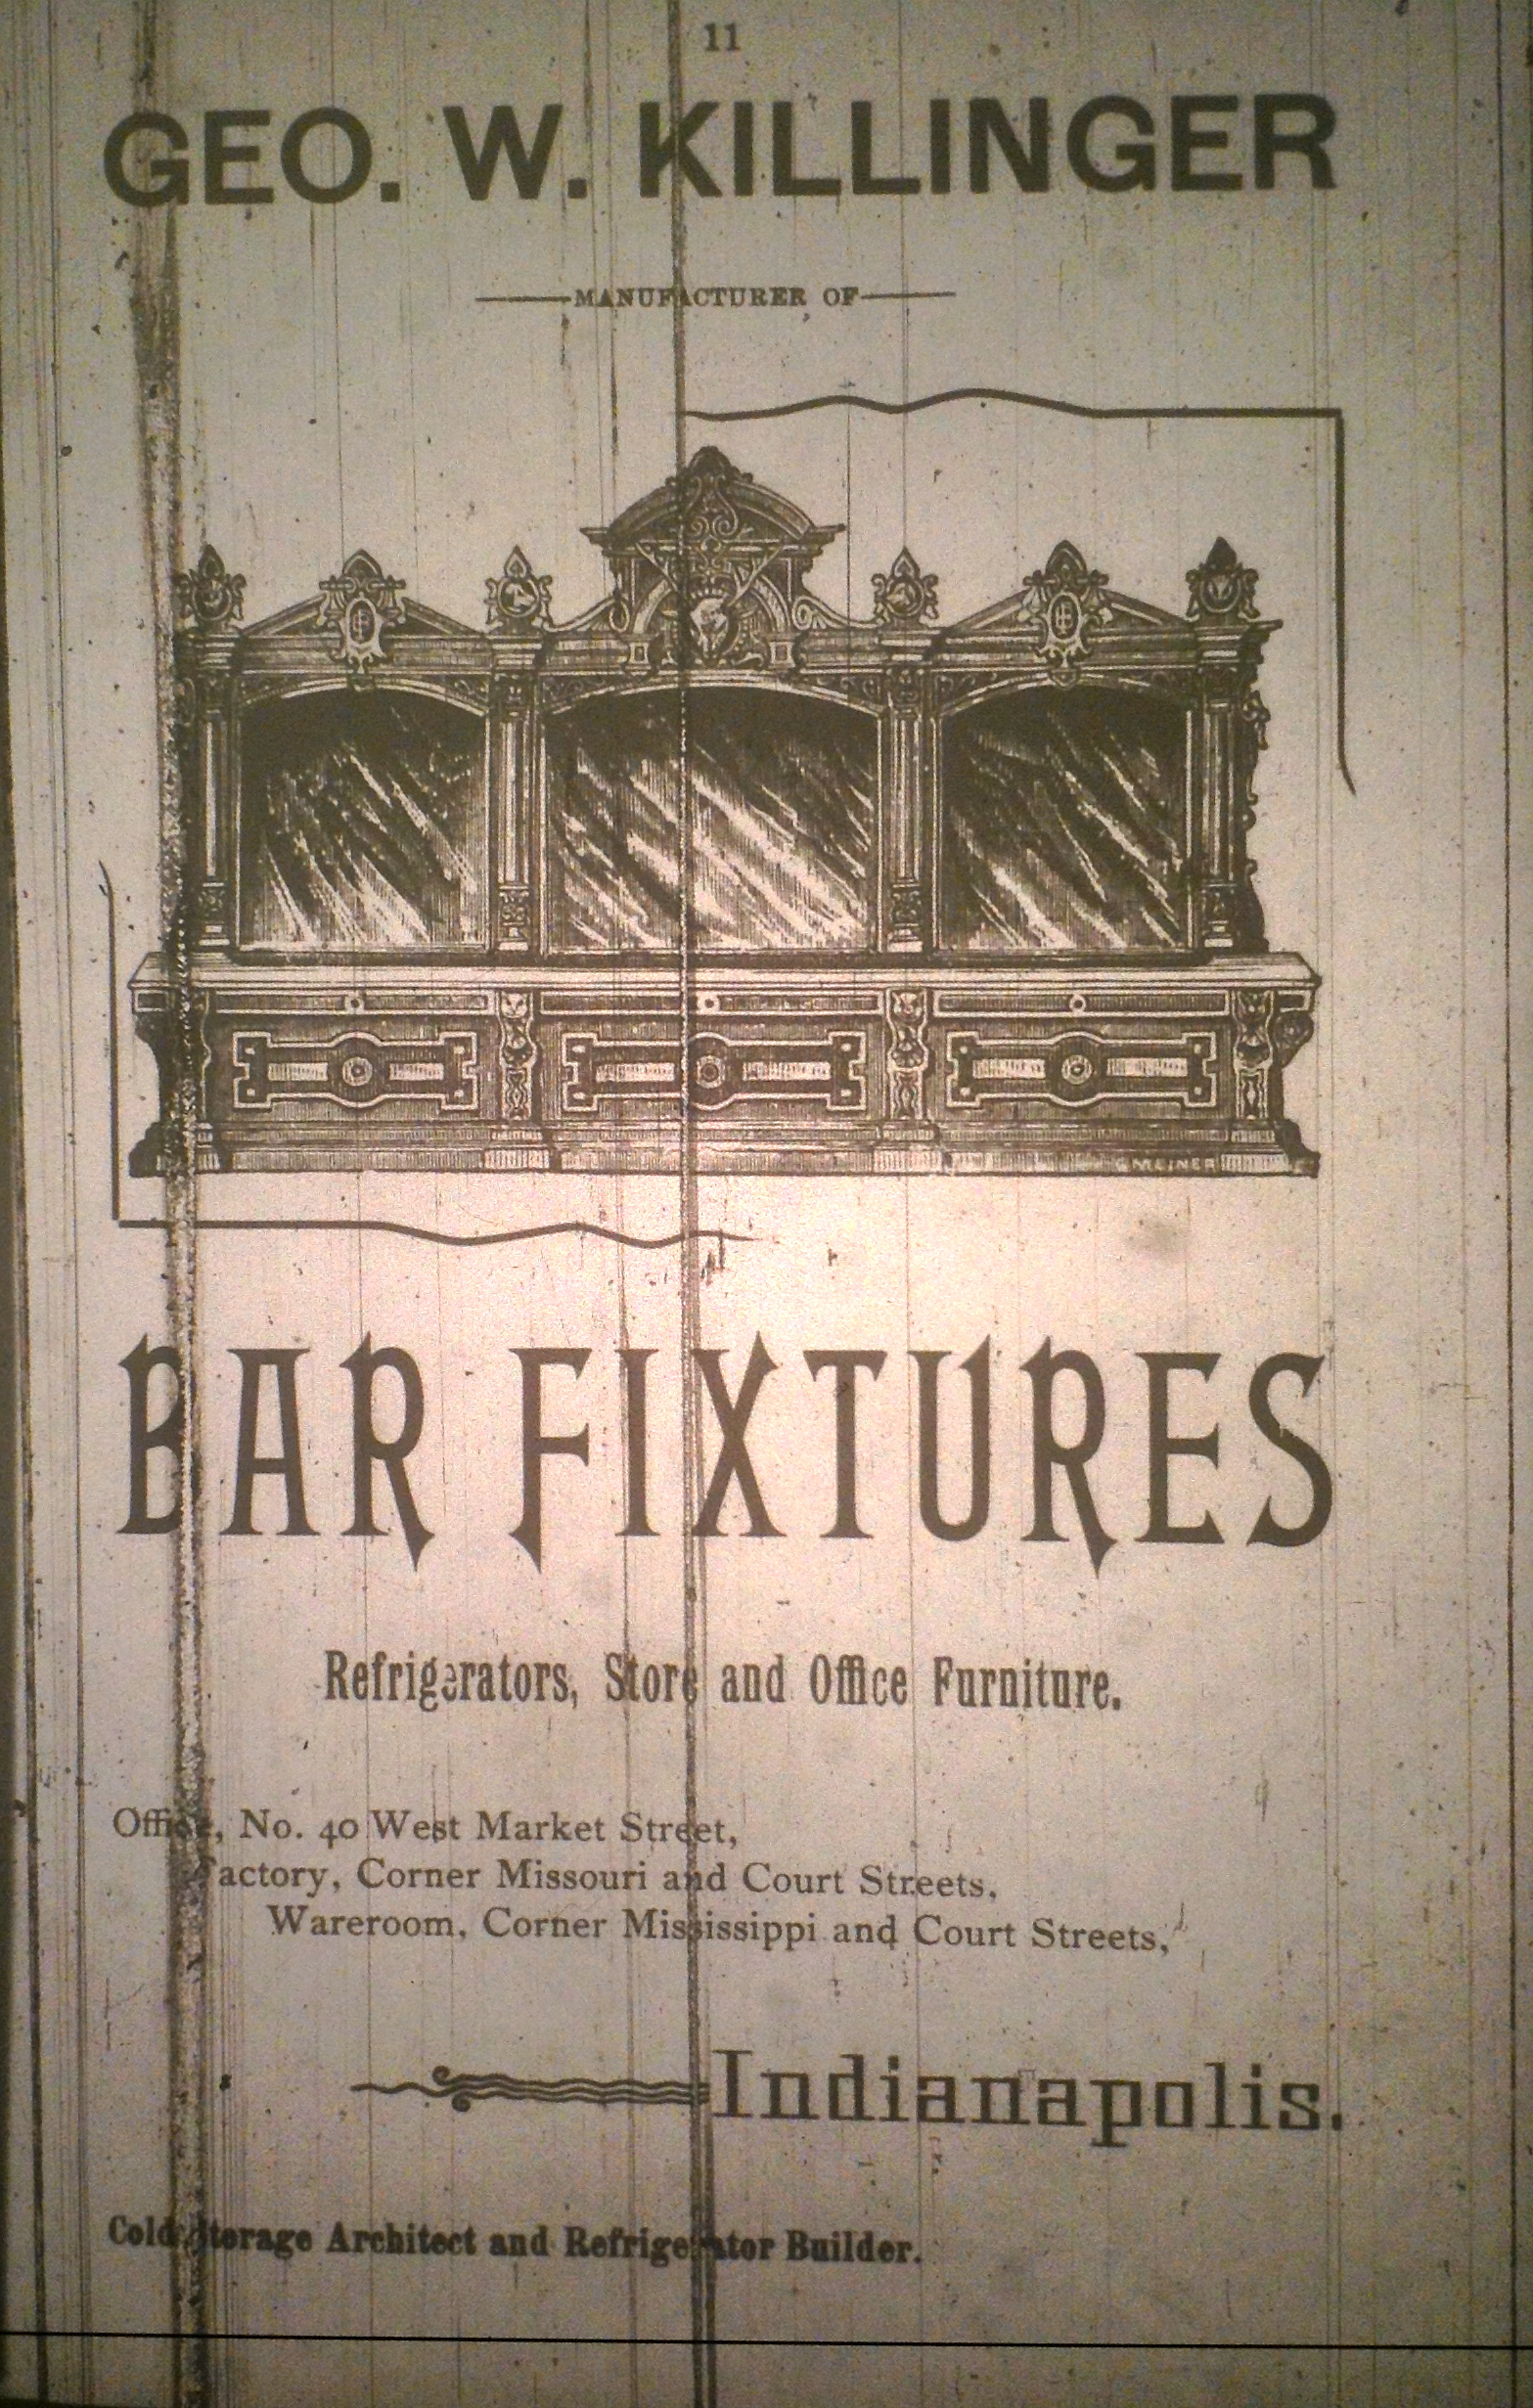 Sunday Adverts: Killinger Bar Fixtures